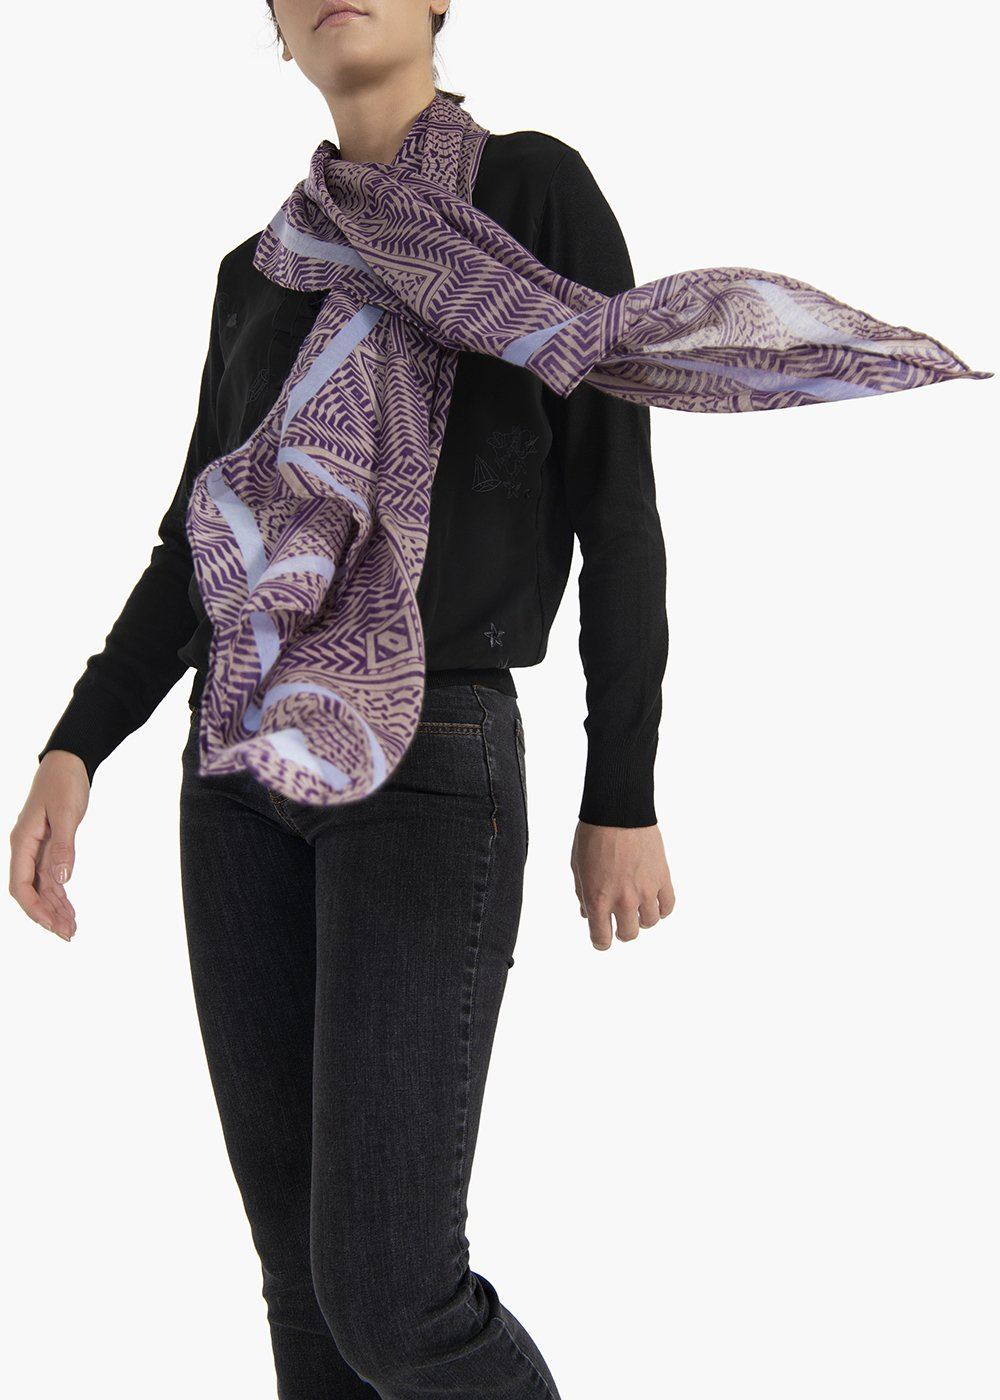 Sindy multicolour scarf with geometric designs - Polvere  /   Notte Fantasia - Woman